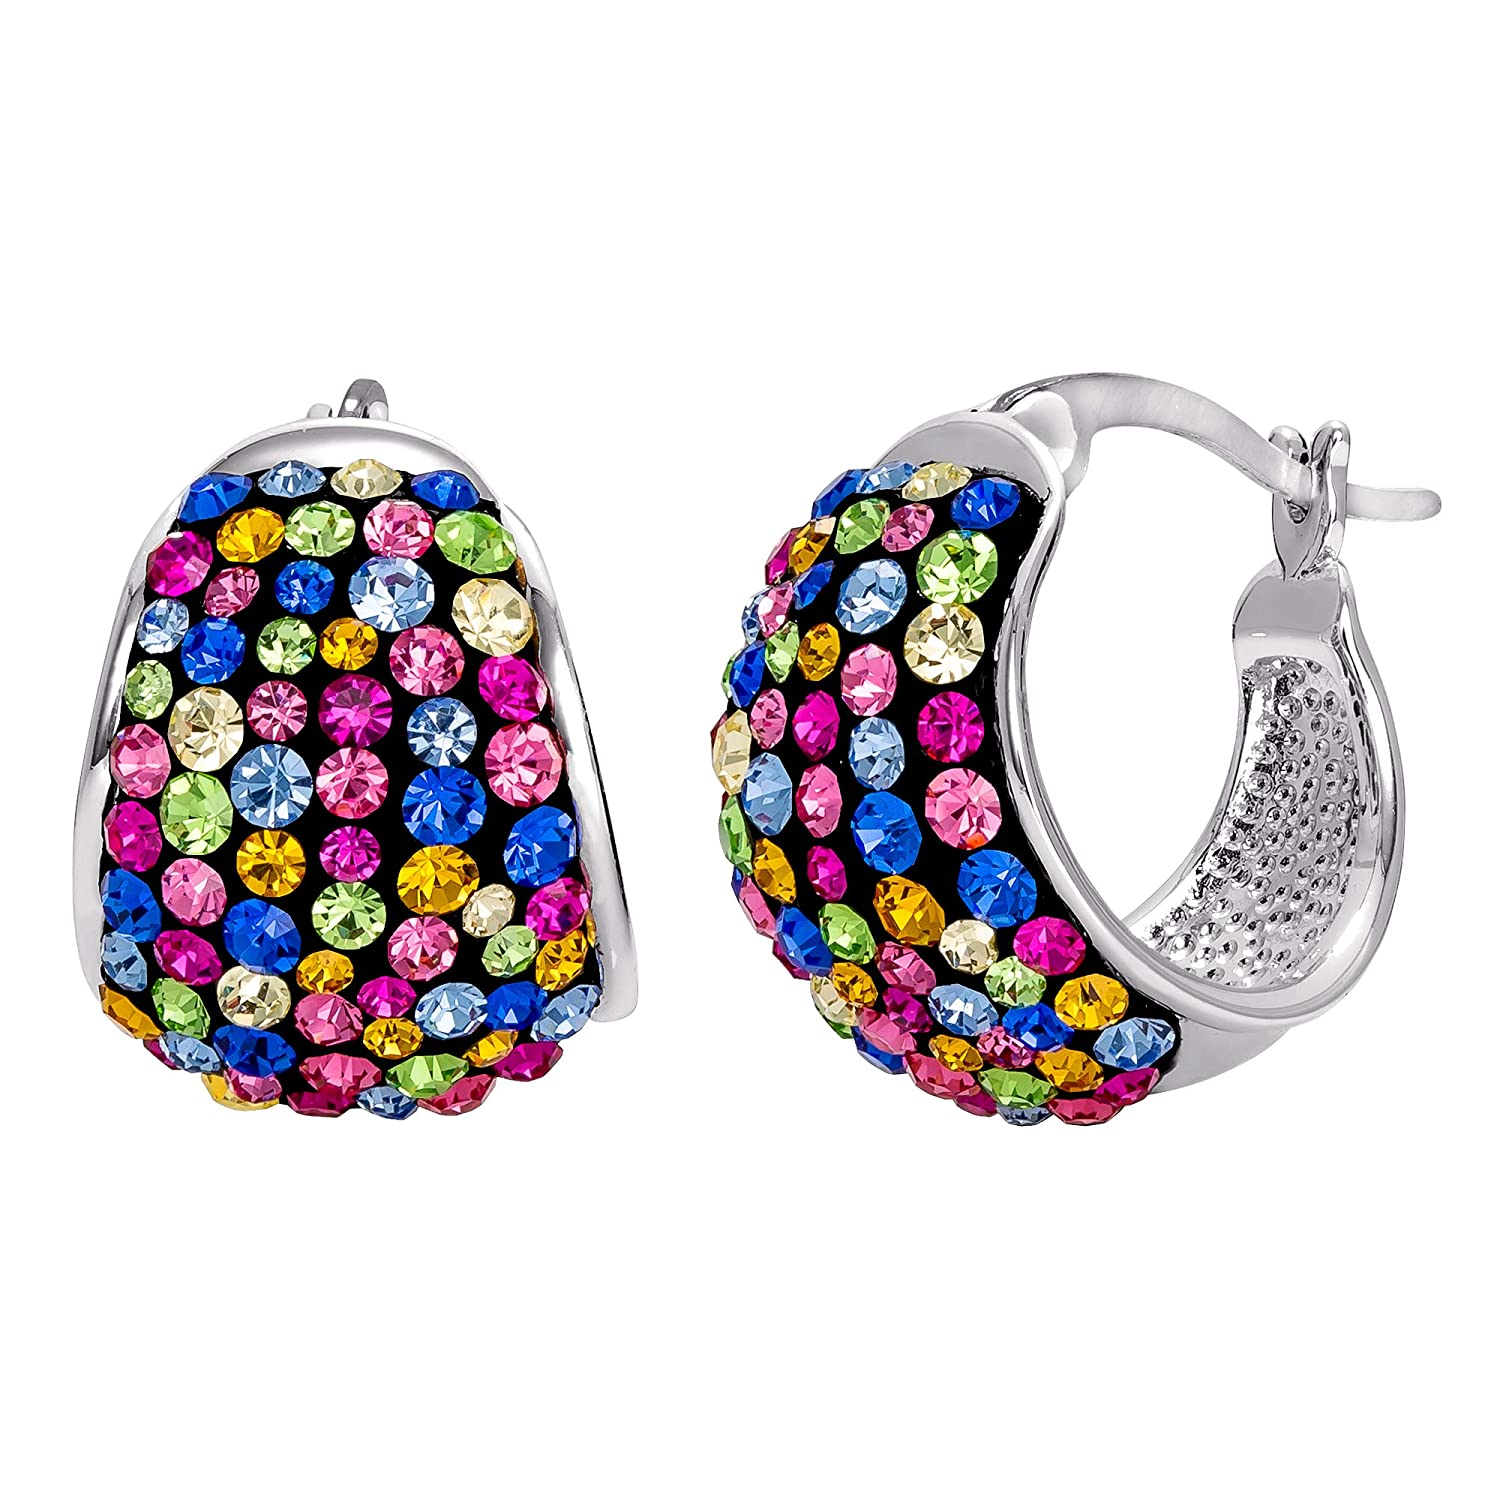 Crystalogy Jewelry for Women Multicolor Crystal Covered Silver Plated Huggie Earrings